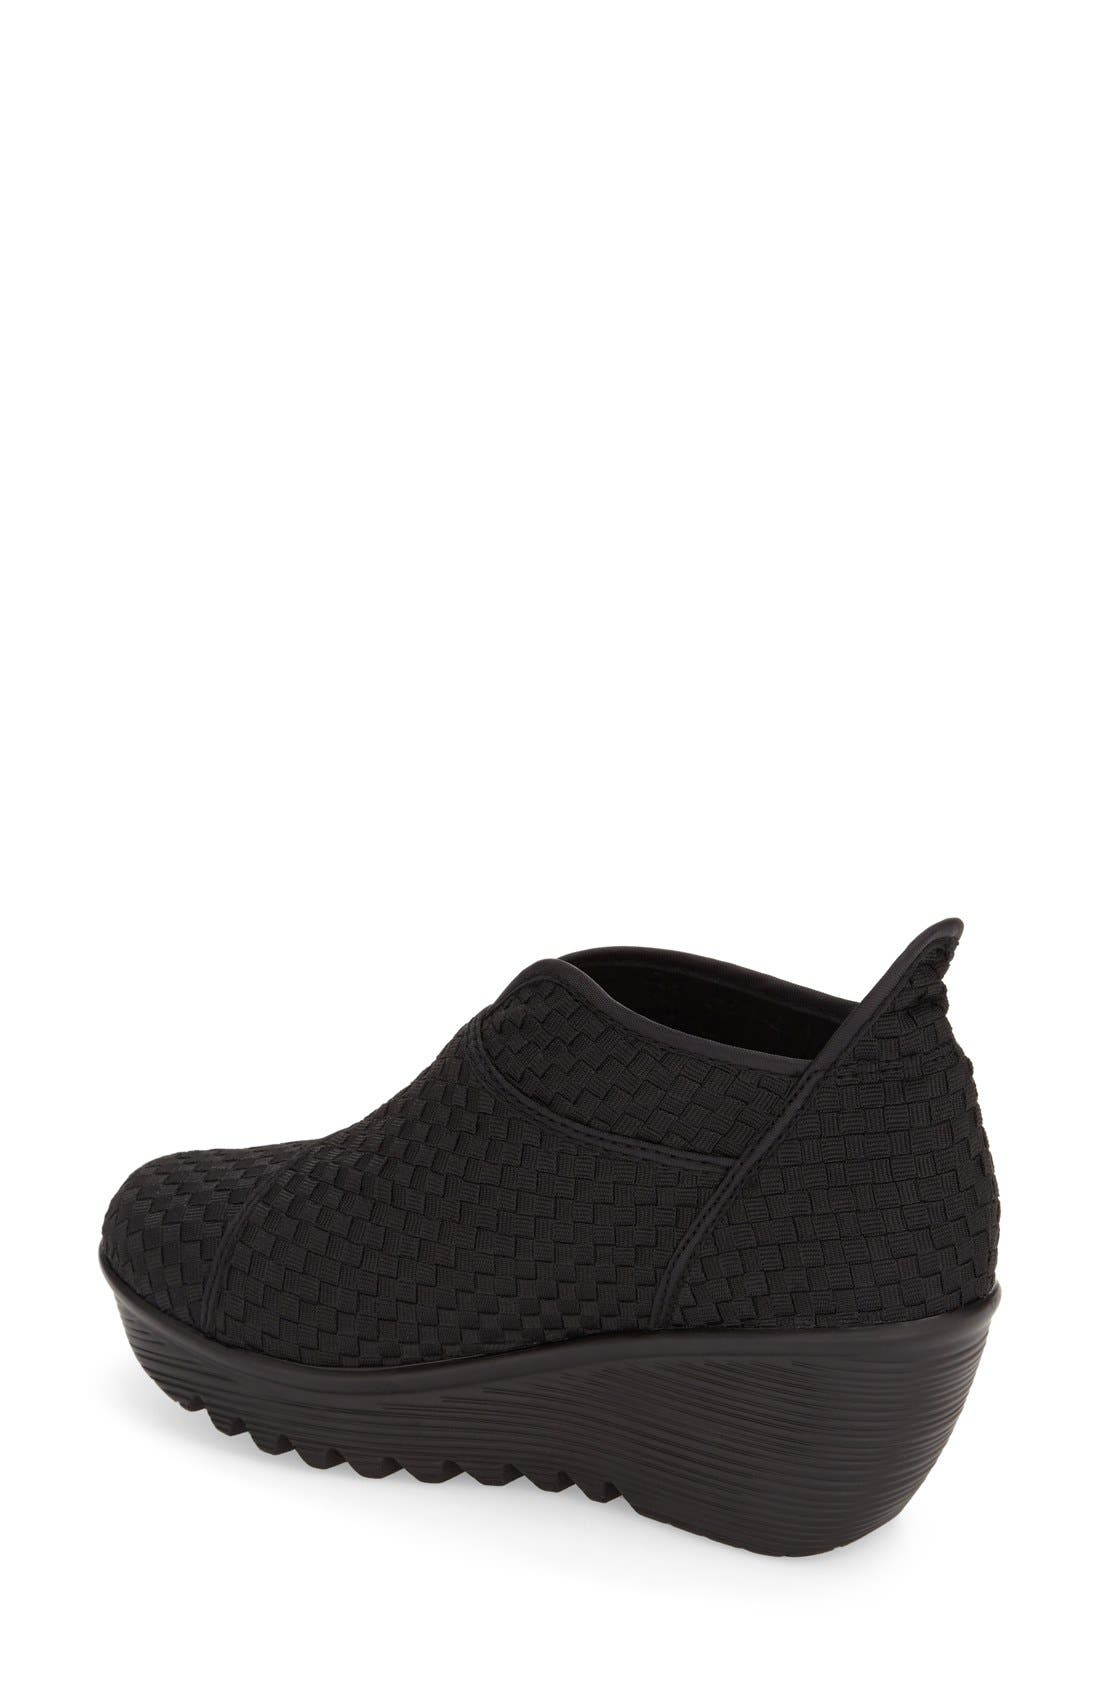 'ZigZag' Wedge Bootie,                             Alternate thumbnail 2, color,                             001